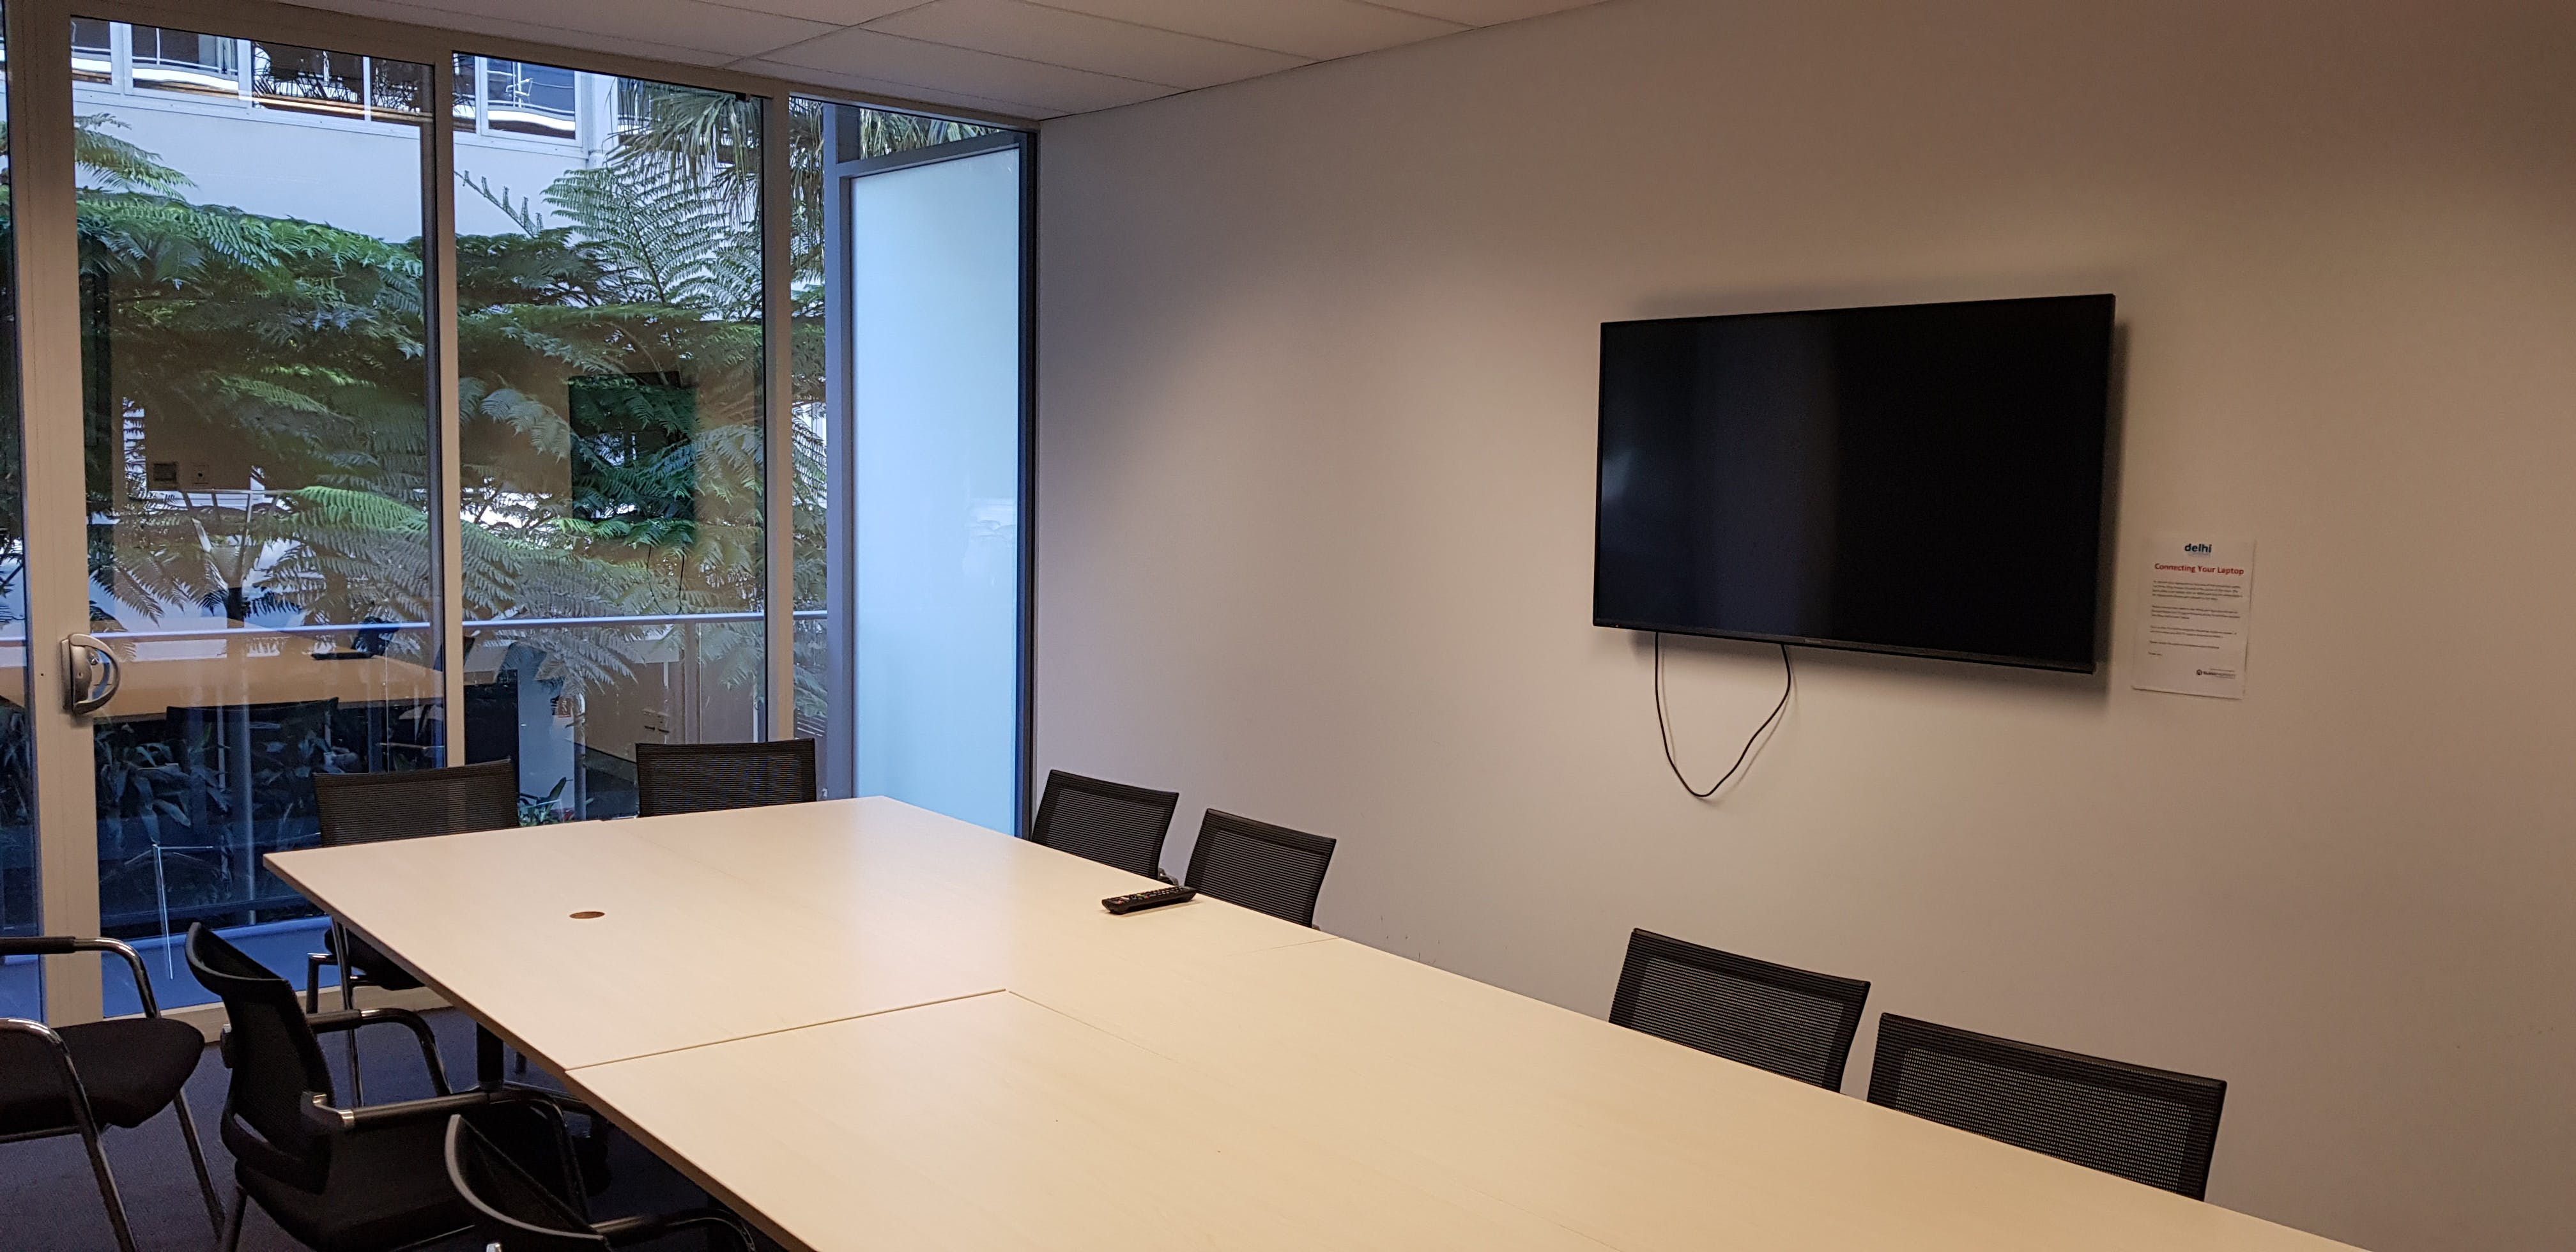 Shared office at Tele Training, image 1